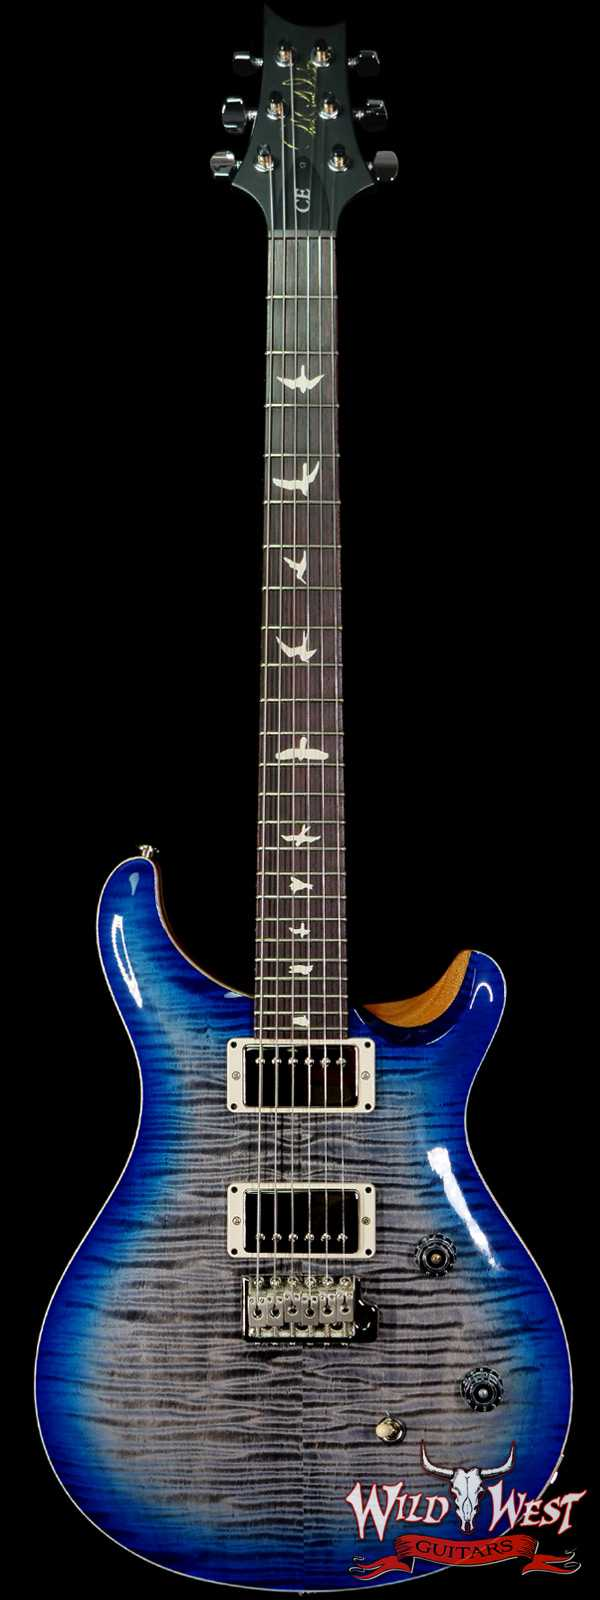 Paul Reed Smith PRS Wild West Guitars Special Run Flame Top Black Neck CE 24 Faded Grey Black Blue Burst 318380